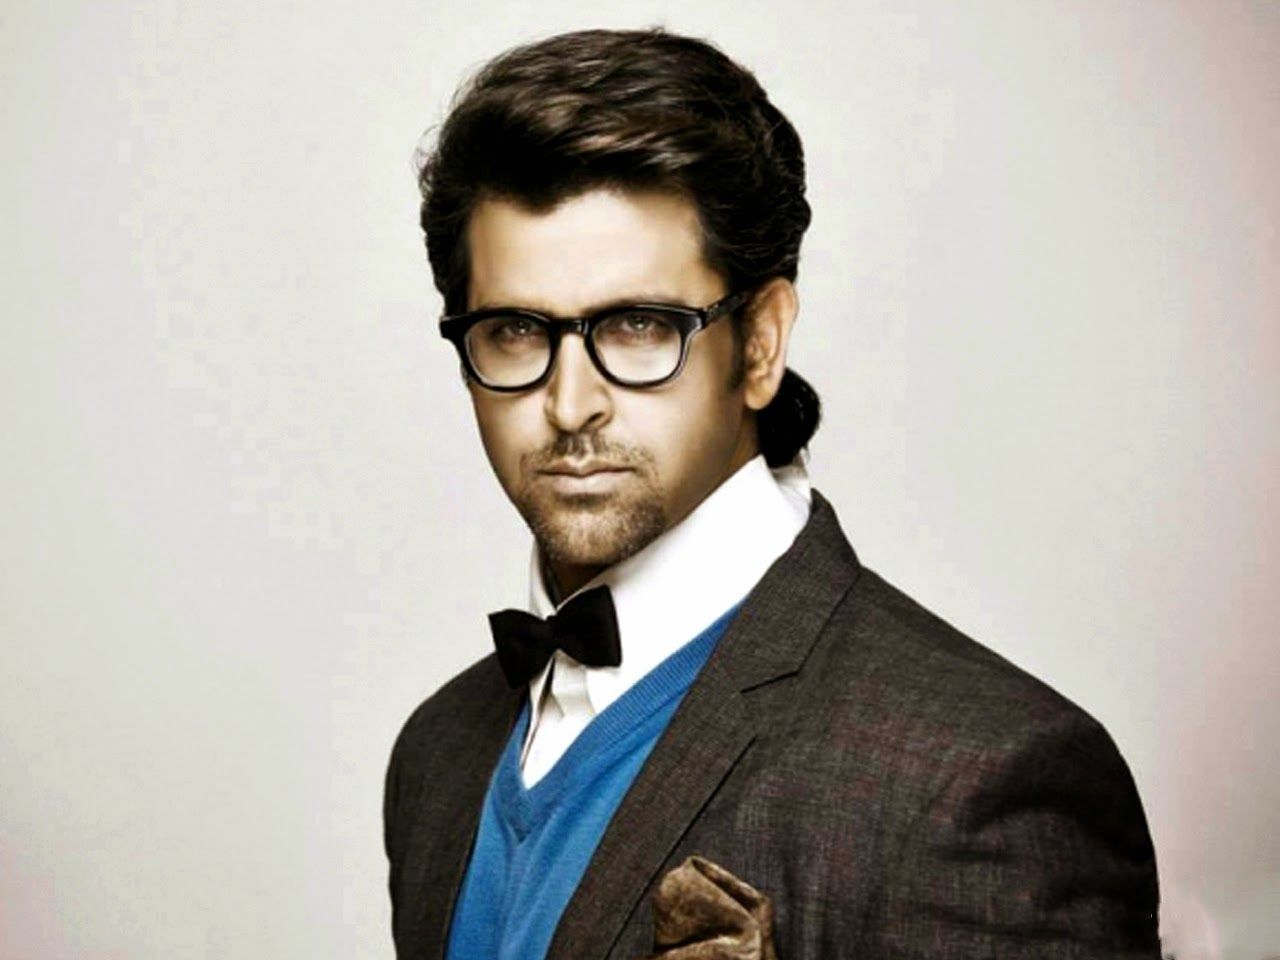 Wallpaper download bollywood actors - Wallpaper S Station Hrithik Roshan Hot And Dashing Indian Actor Hd W